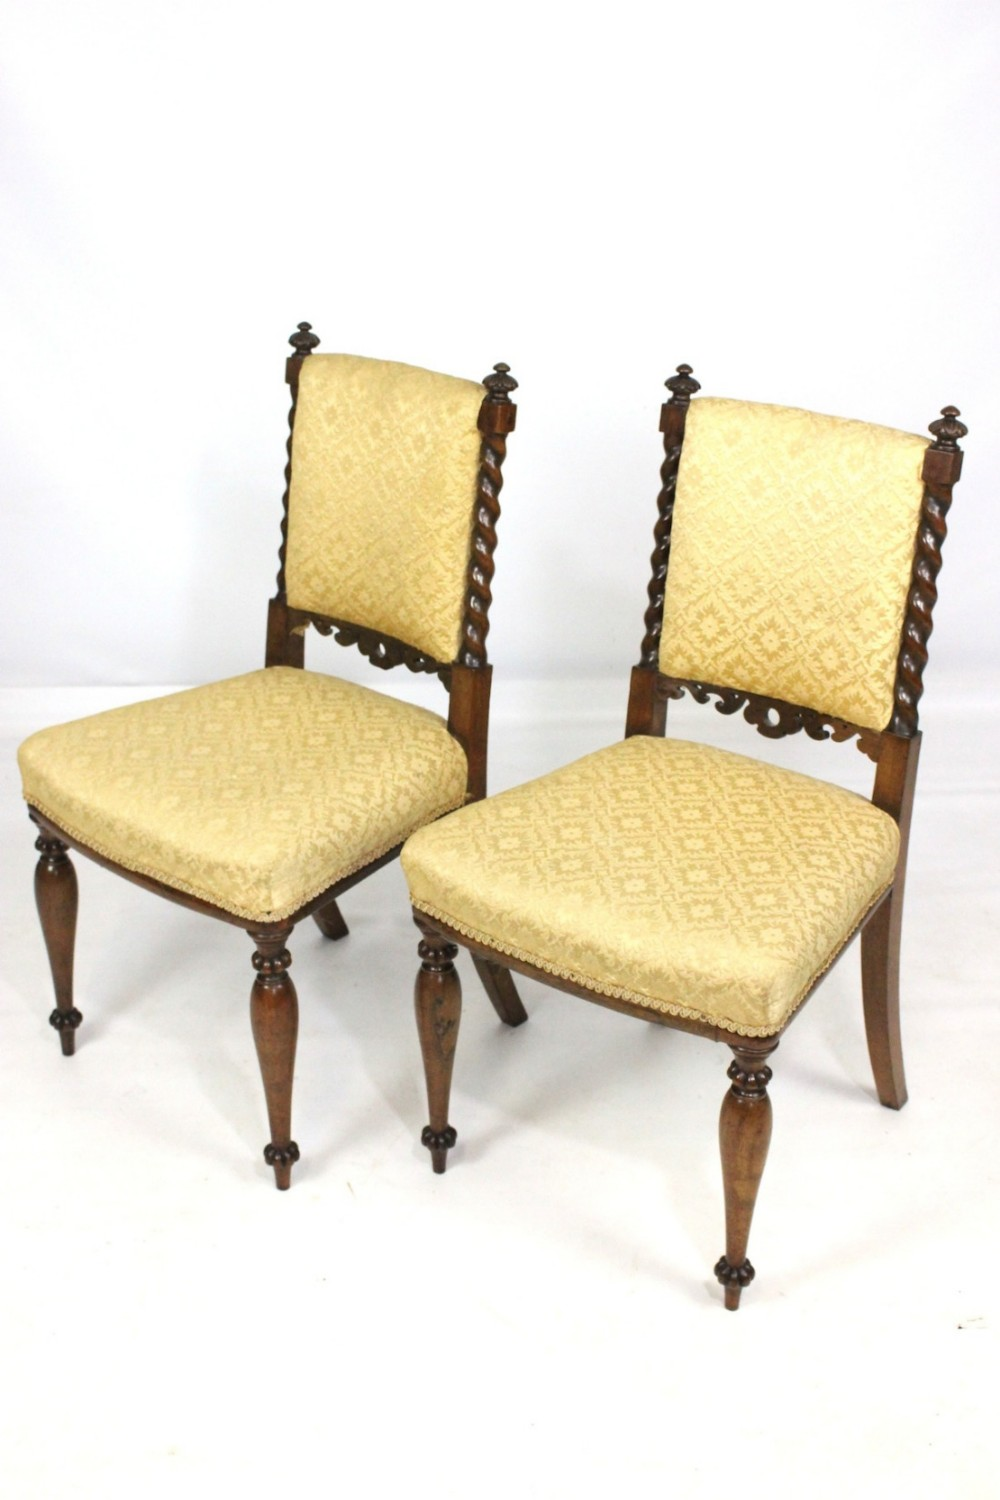 Pair Of Antique Rosewood Hall Bedroom Or Dining Chairs  : dealerhamptonsinteriorshighres1490445524062 9529266099 from www.sellingantiques.co.uk size 1000 x 1500 jpeg 159kB